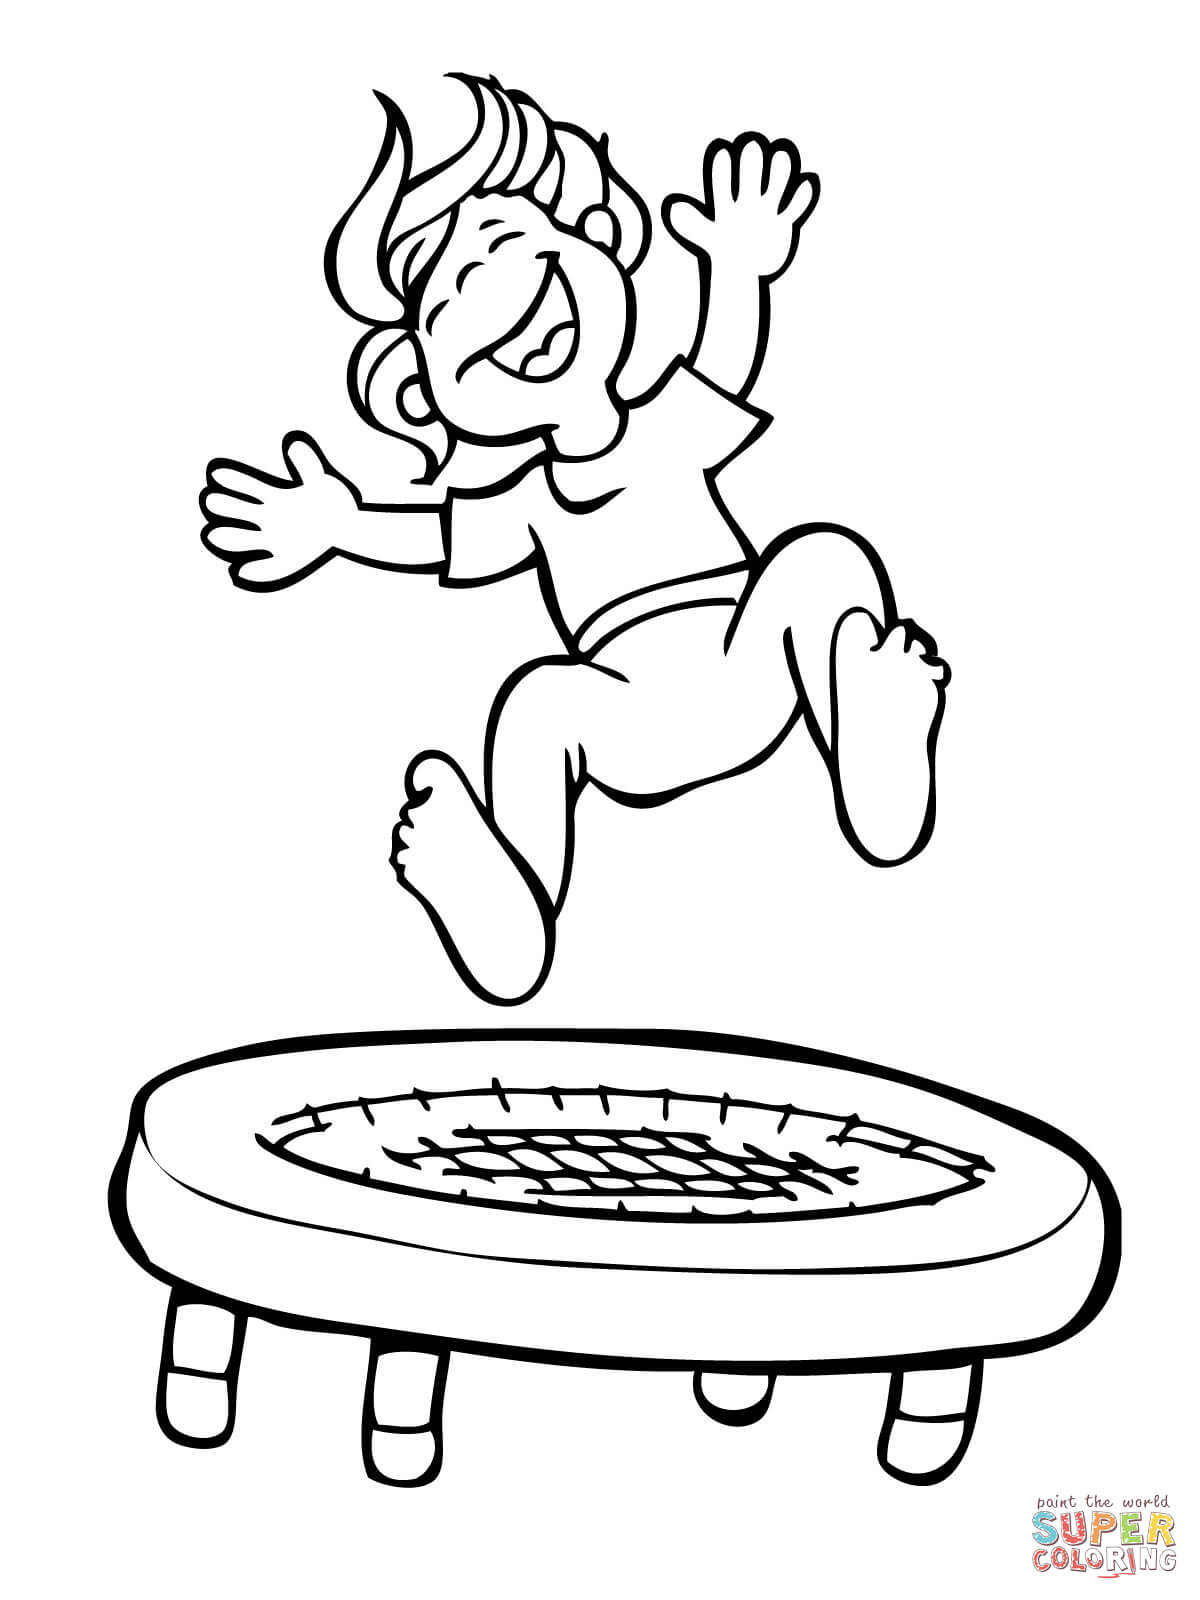 Kid Jumping On The Trampoline Coloring Page